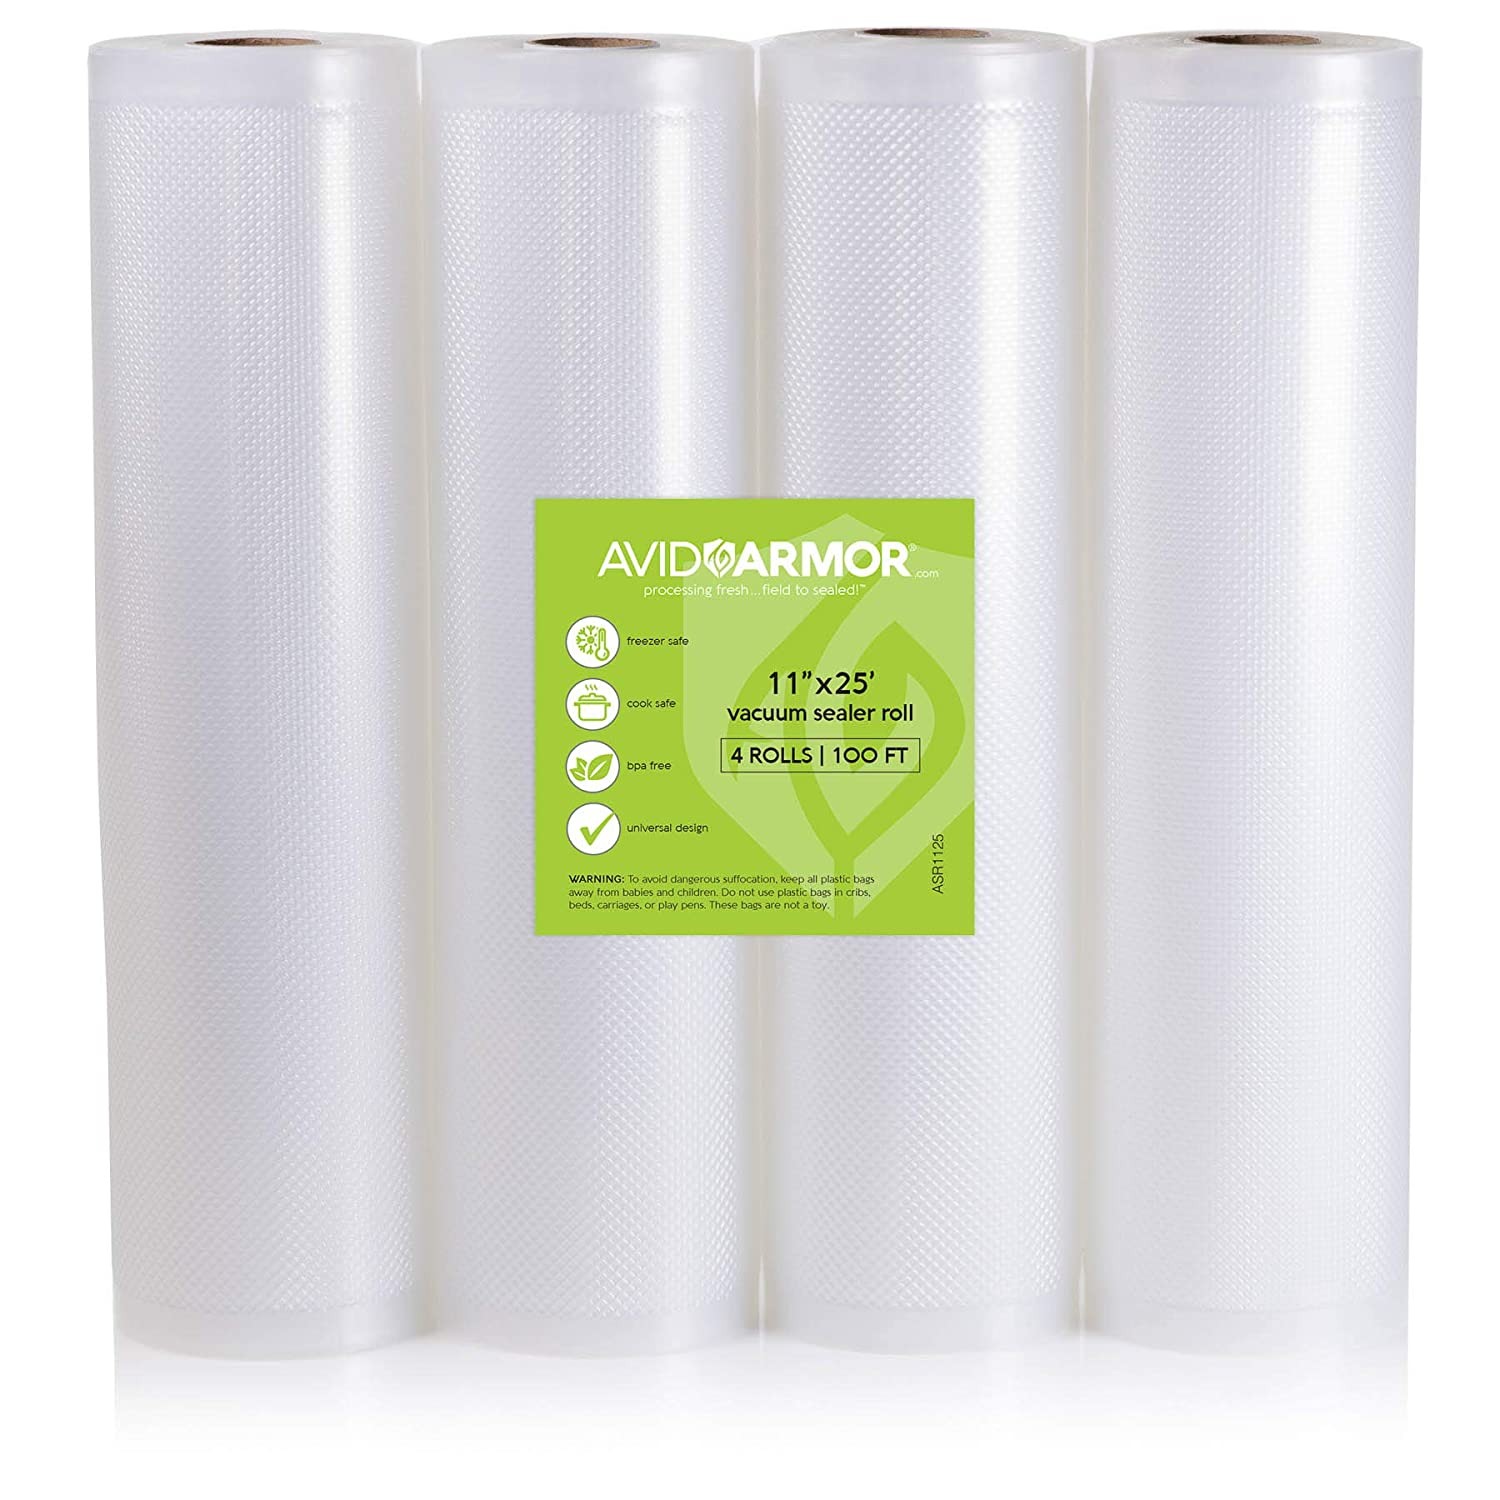 "Food Saver Bags Rolls 4 Pack 11"" x 25 Feet for Foodsaver, Seal a Meal Vacuum Sealer FITS INSIDE MACHINE STORAGE AREA Heavy Duty, Sous Vide Vaccume, Cut to Size Roll BPA Free 100 Feet Avid Armor"